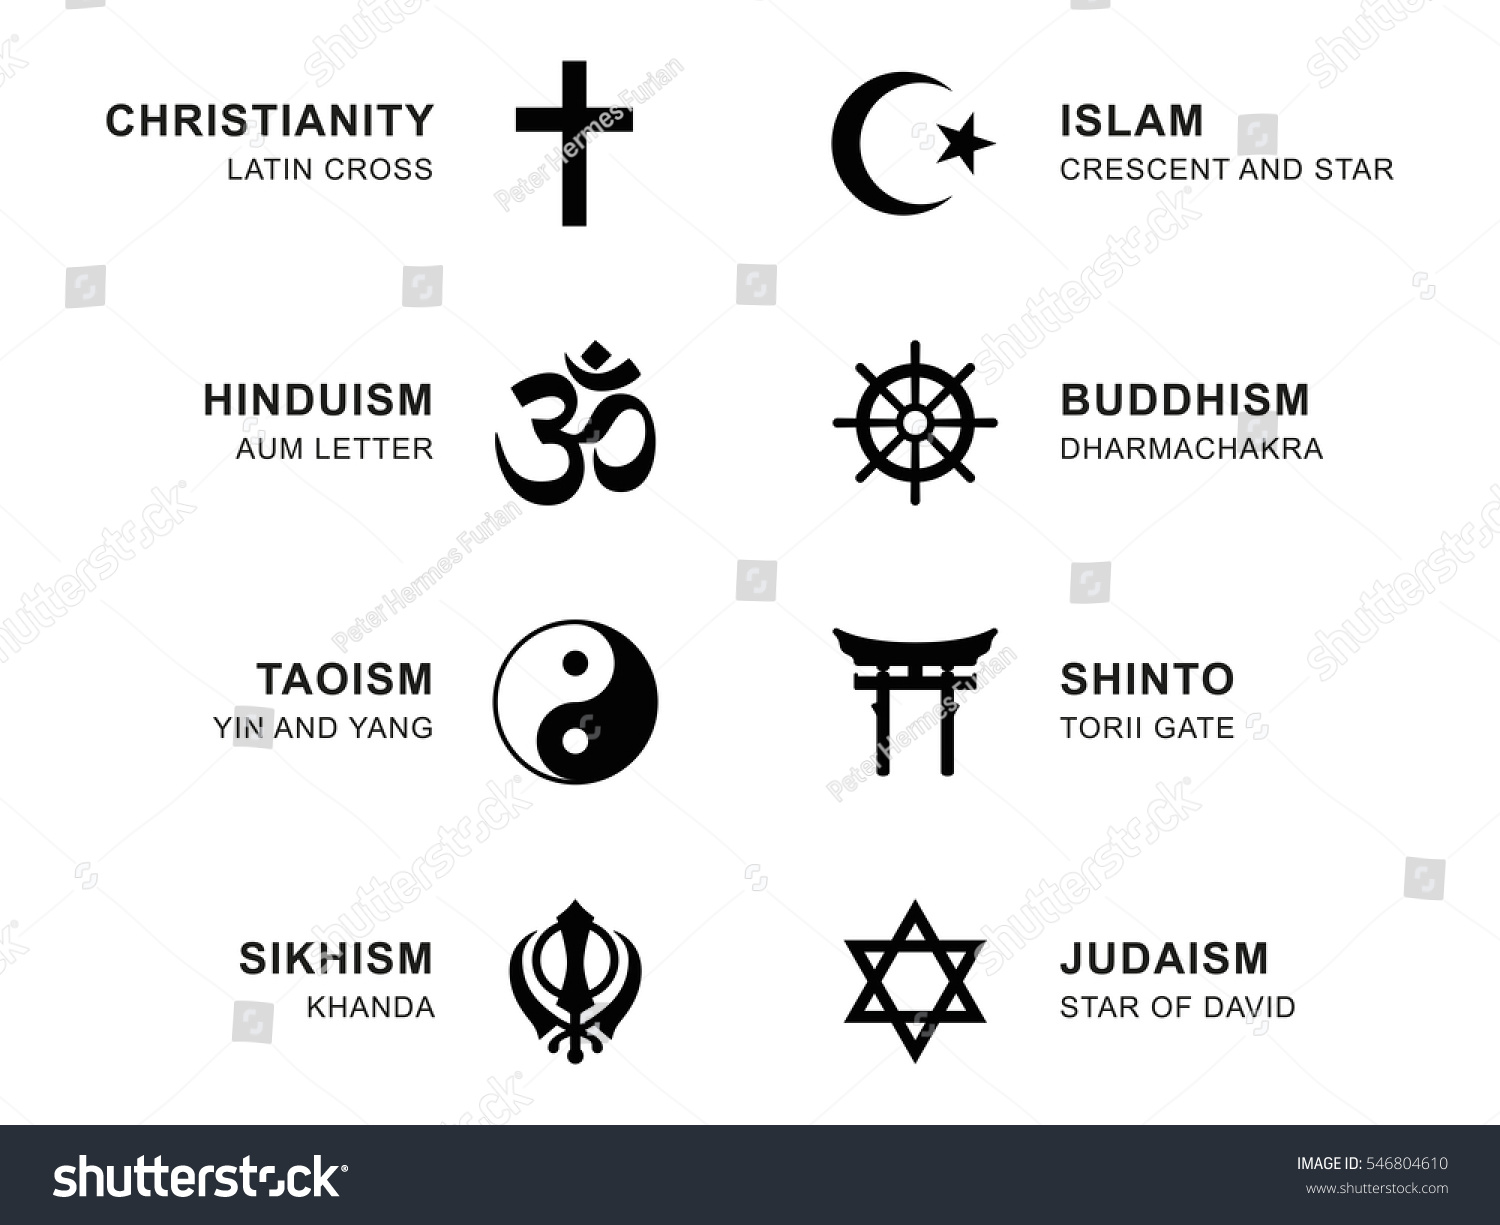 Royalty Free World Religion Symbols Eight Signs Of 546804610